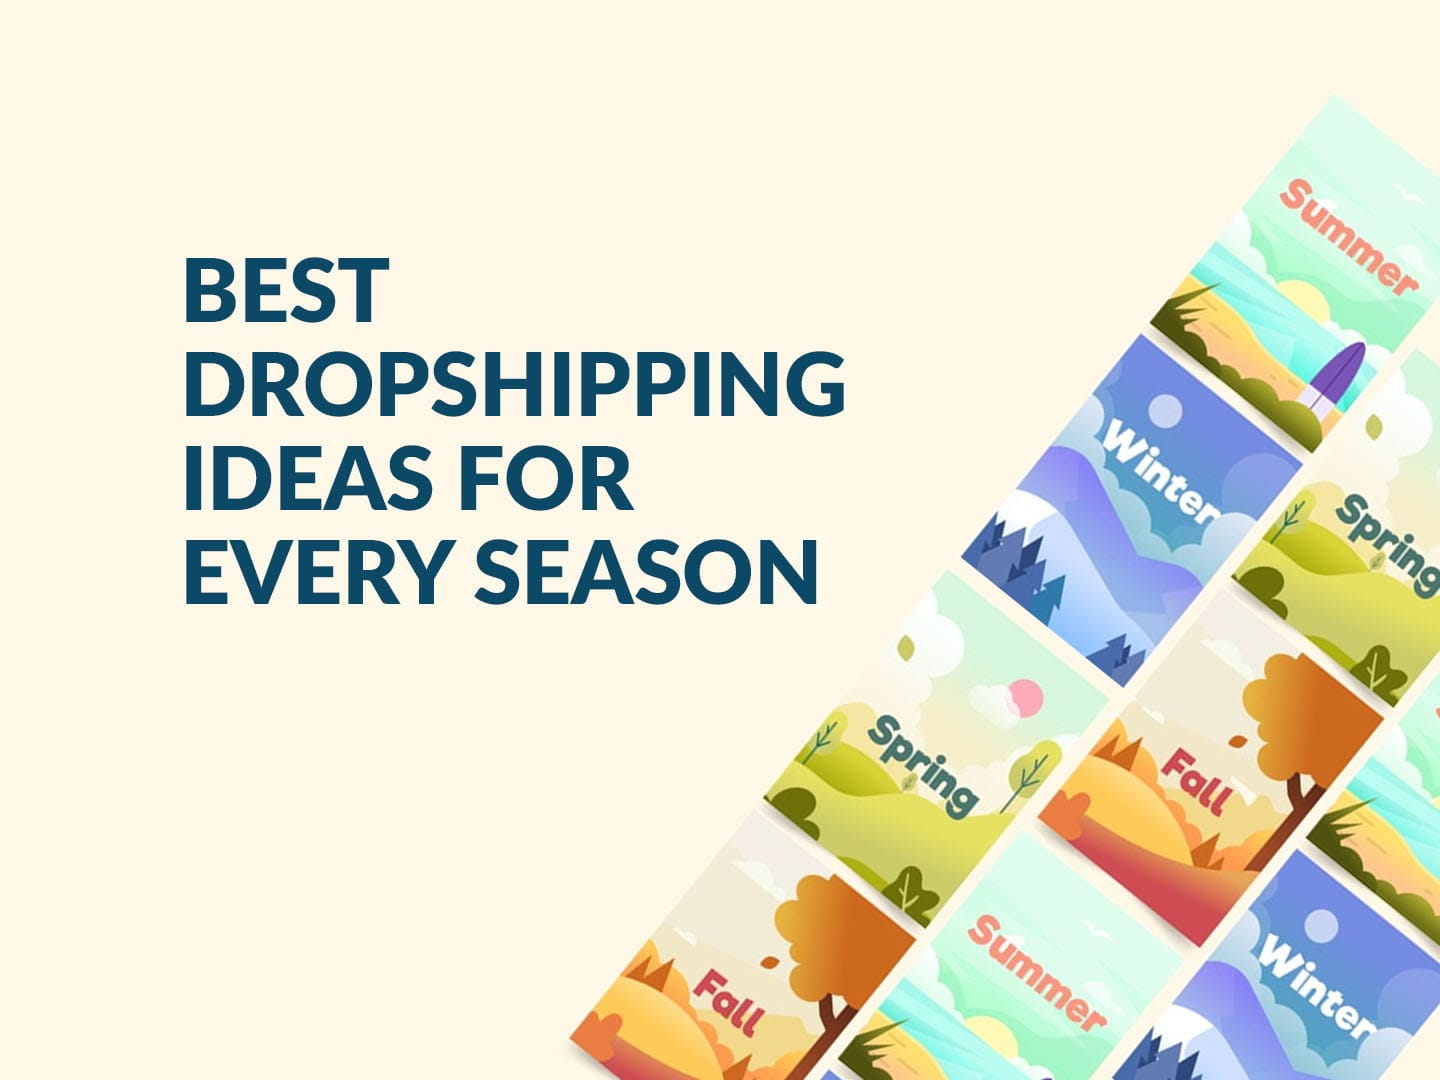 BEST-DROPSHIPPING-IDEAS-FOR-EVERY-SEASON